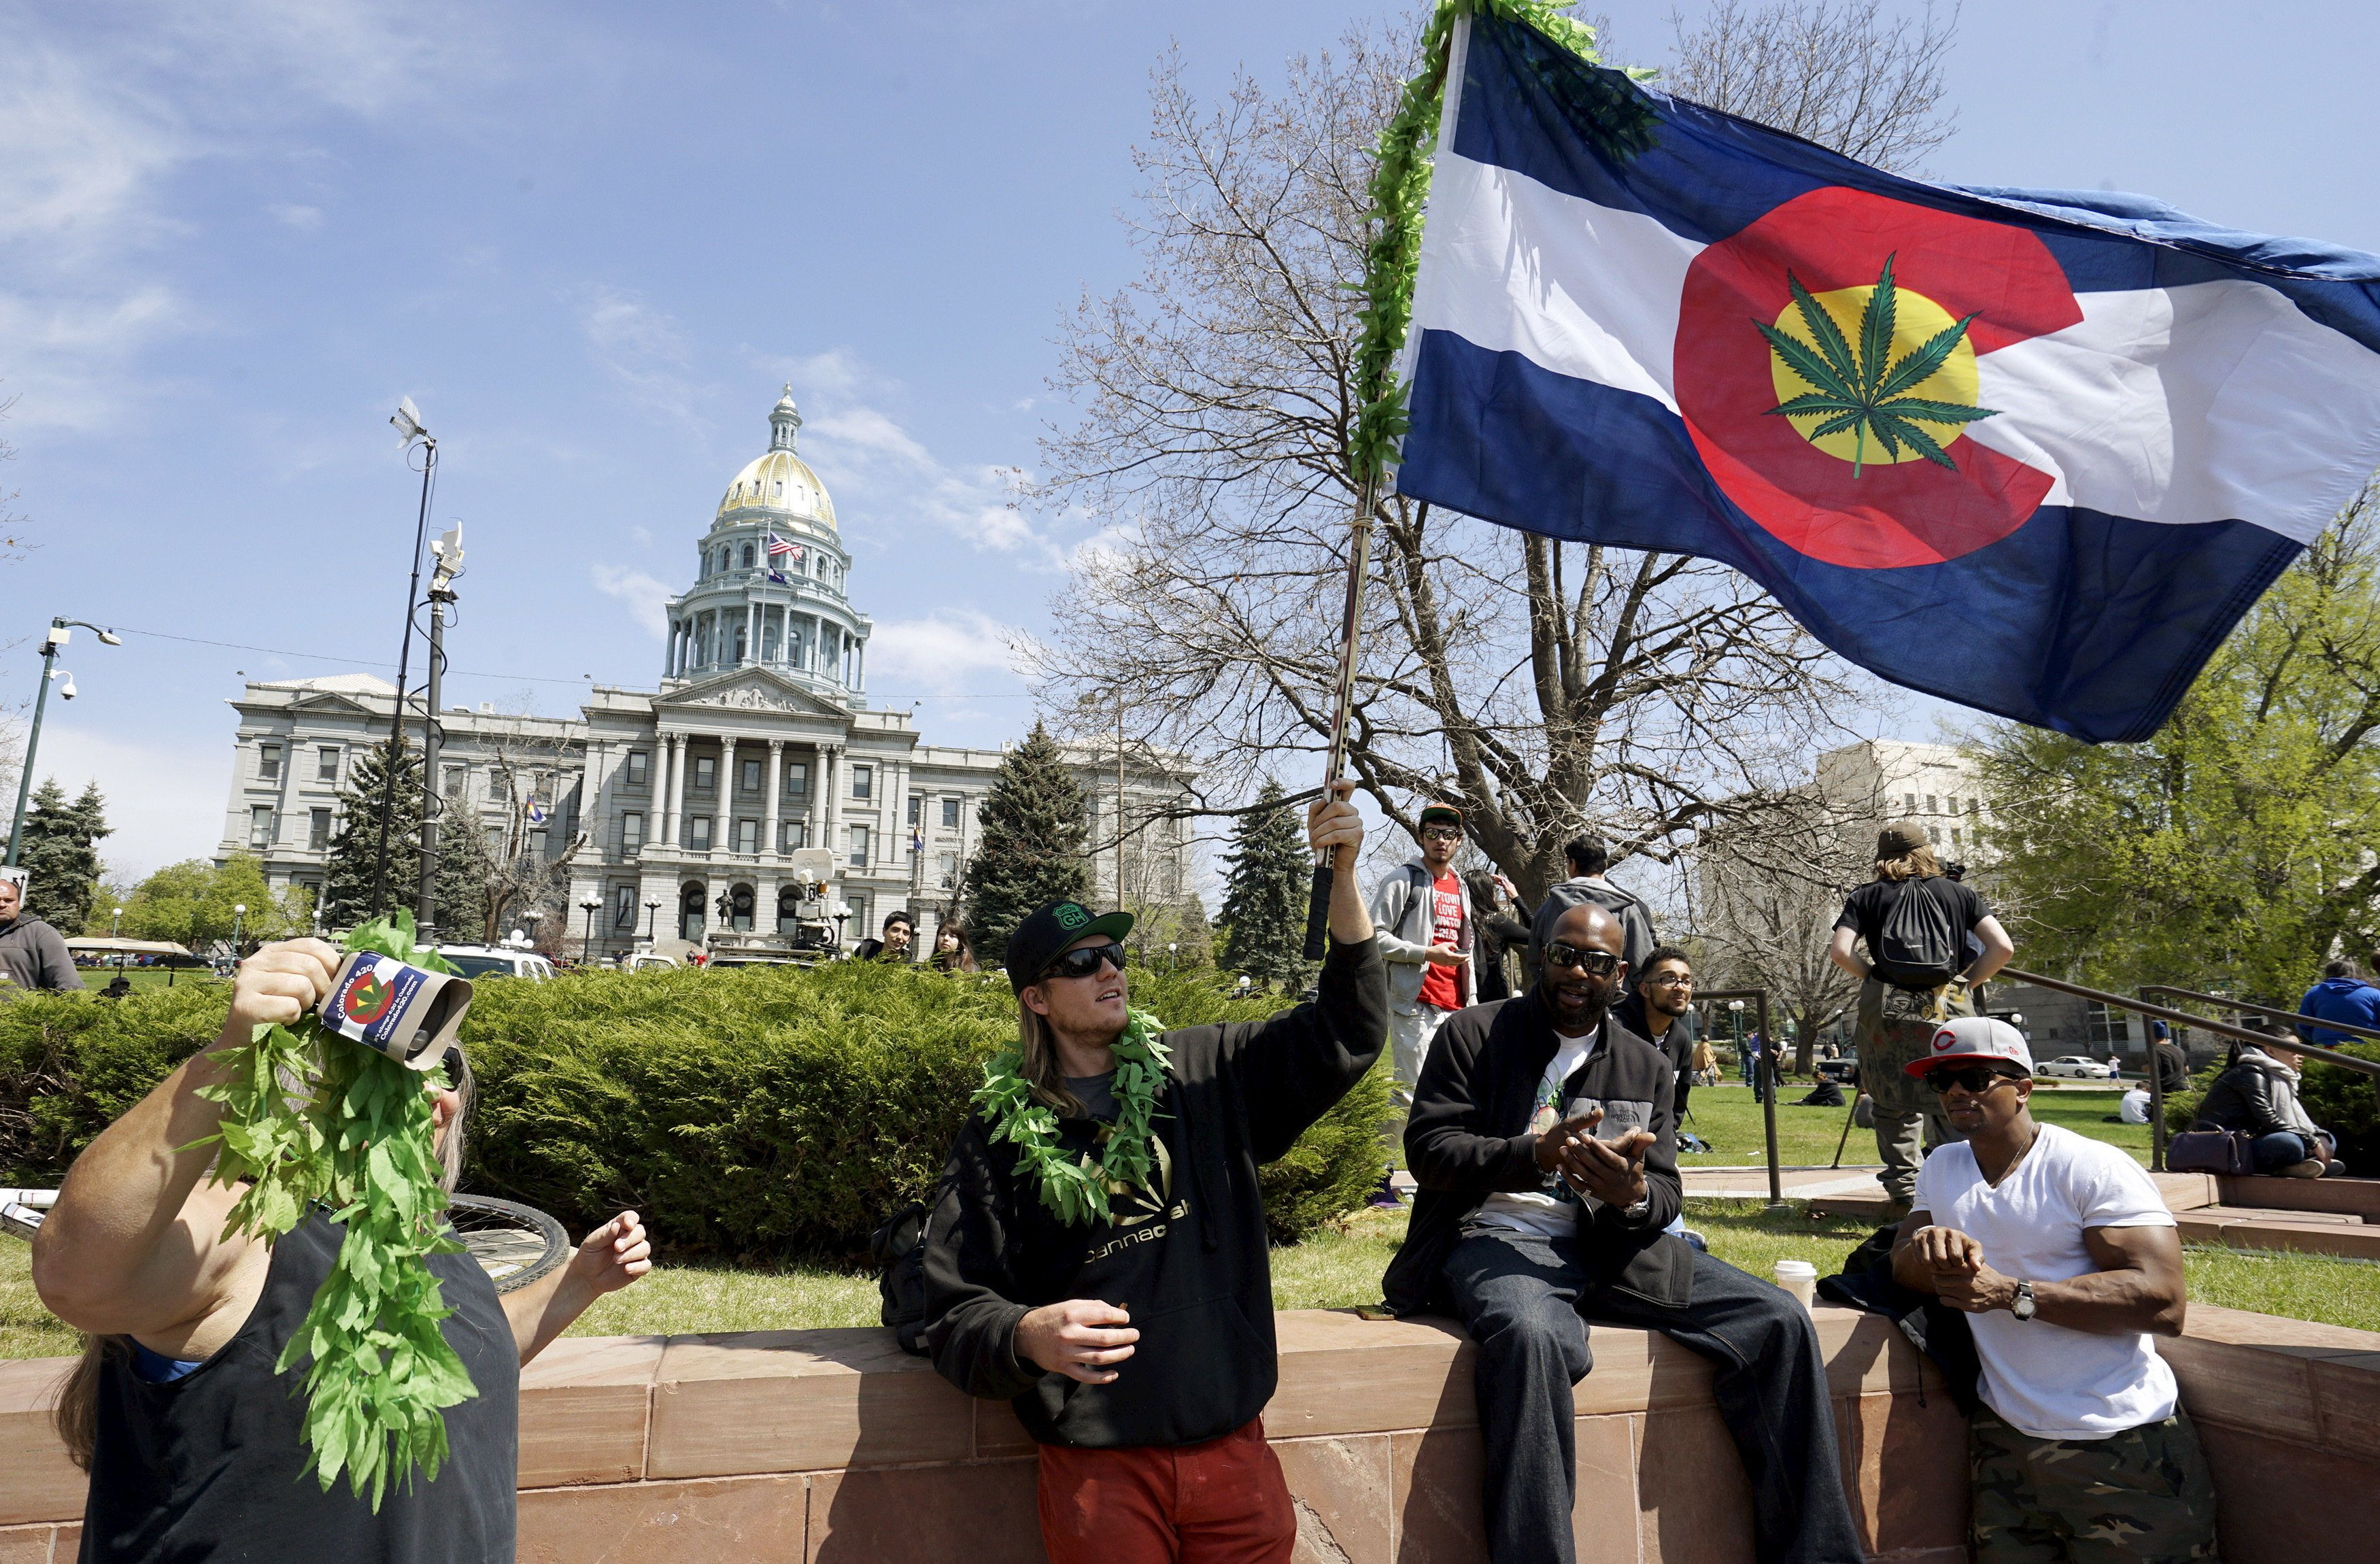 A man waves a Colorado flag with a marijuana leaf on it at Denver's annual 4/20 marijuana rally in front of the state capitol building in downtown Denver April 20, 2015. Colorado was the first state in the nation to legalize recreational marijuana in 2012. REUTERS/Rick Wilking